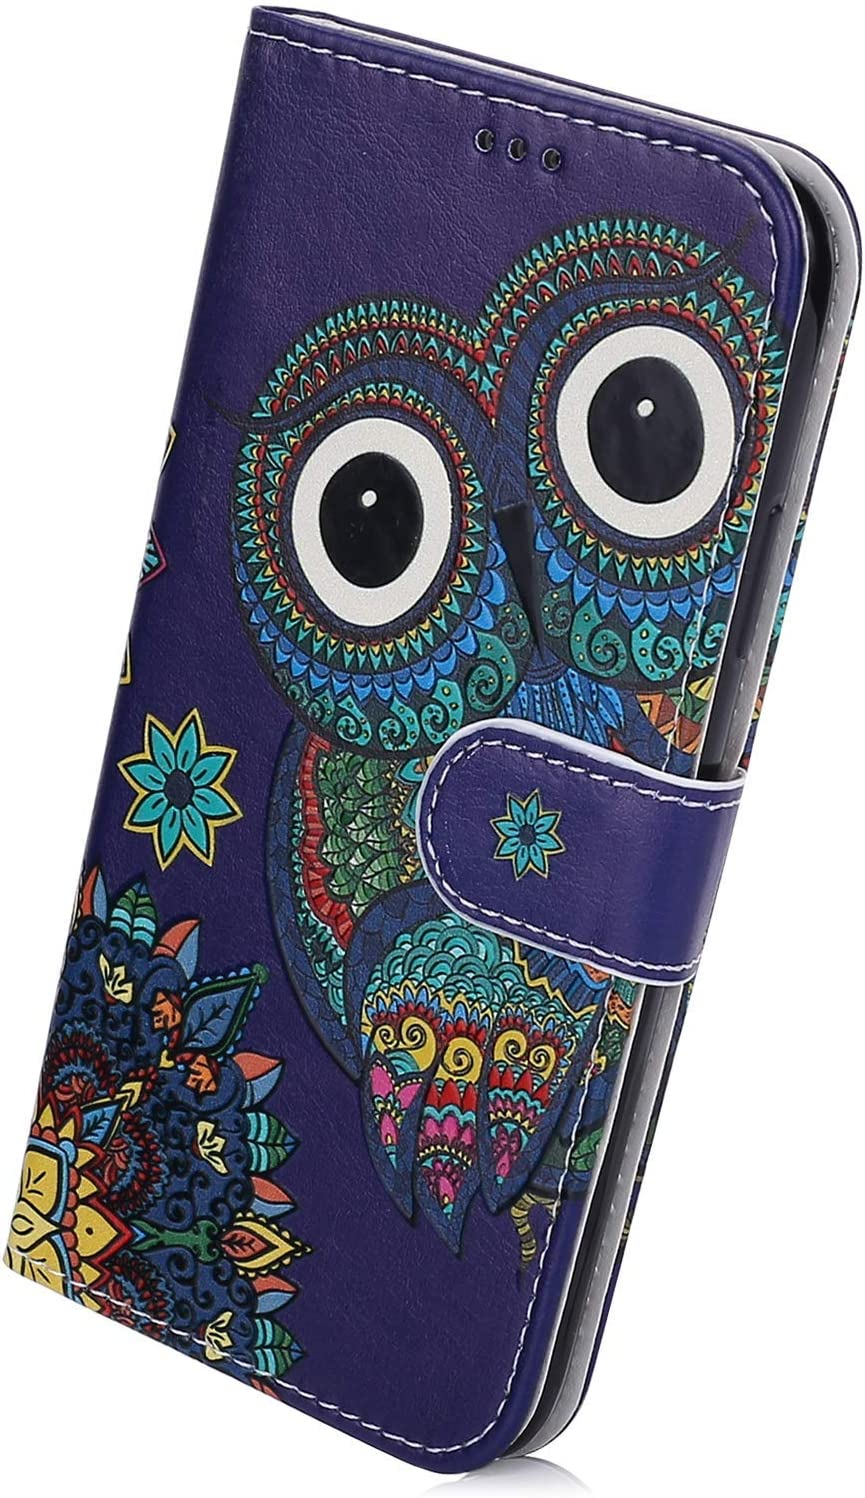 Herbests Compatible with Samsung Galaxy A60 Wallet Case Folio Leather Cover Colorful Vintage Pattern Shockproof Flip Protective Cover with Credit Card Slot Kickstand,Purple Flower Butterfly